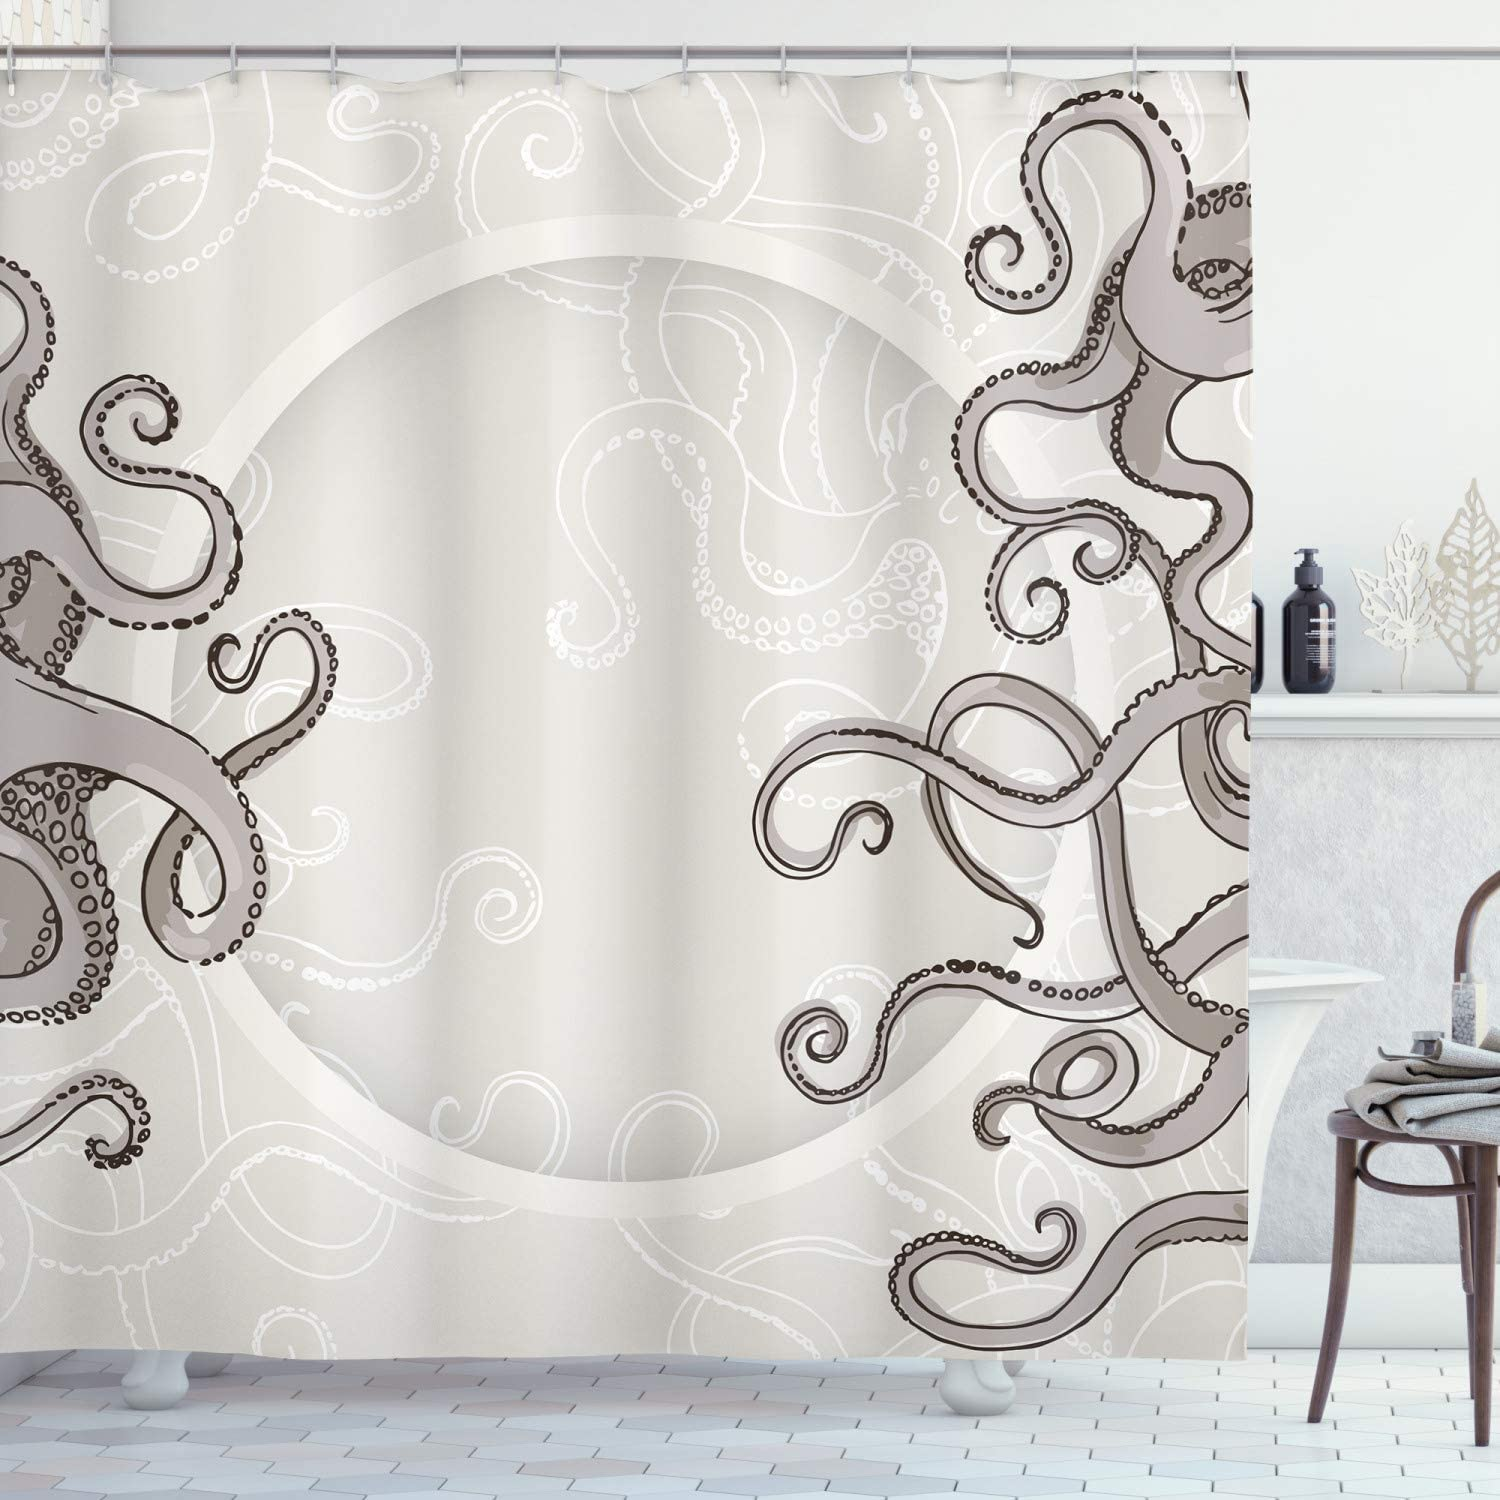 Ambesonne Kraken Shower Curtain, Fish Octopus Tentacles with a Circular Shape Surreal Universe Treasure Beast Graphic, Cloth Fabric Bathroom Decor Set with Hooks, 75